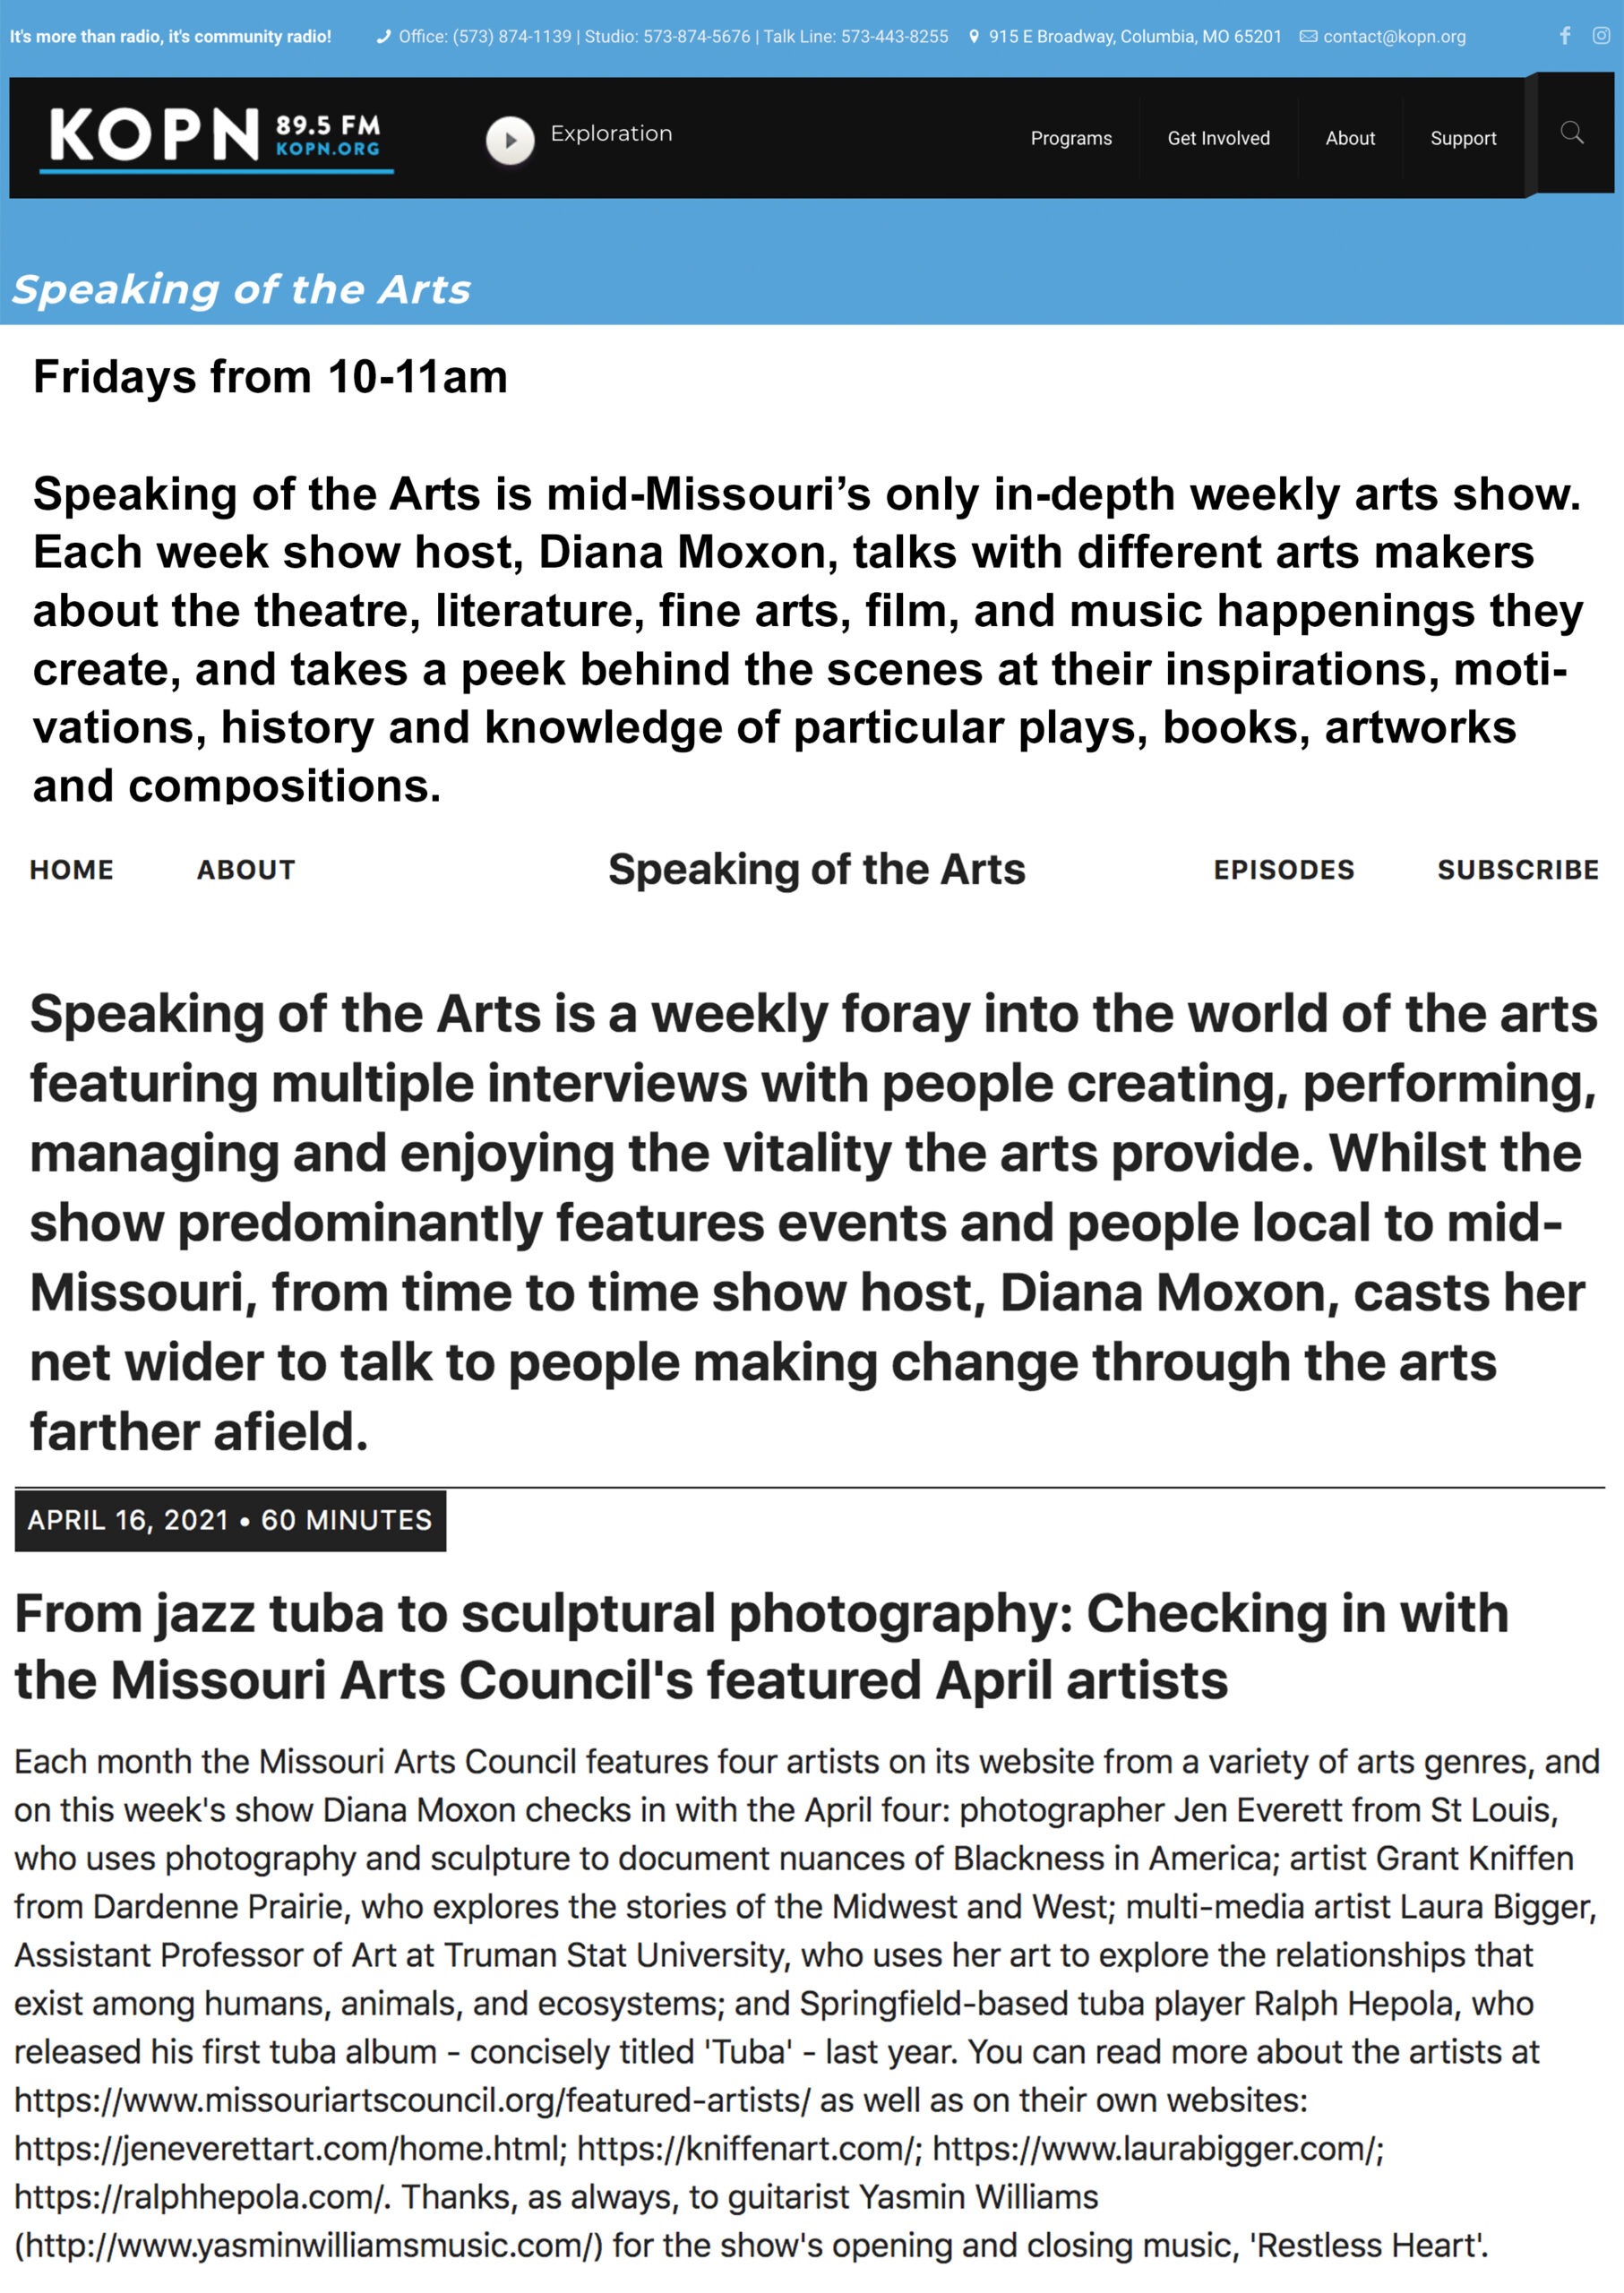 Speaking of the Arts interview with Ralph Hepola